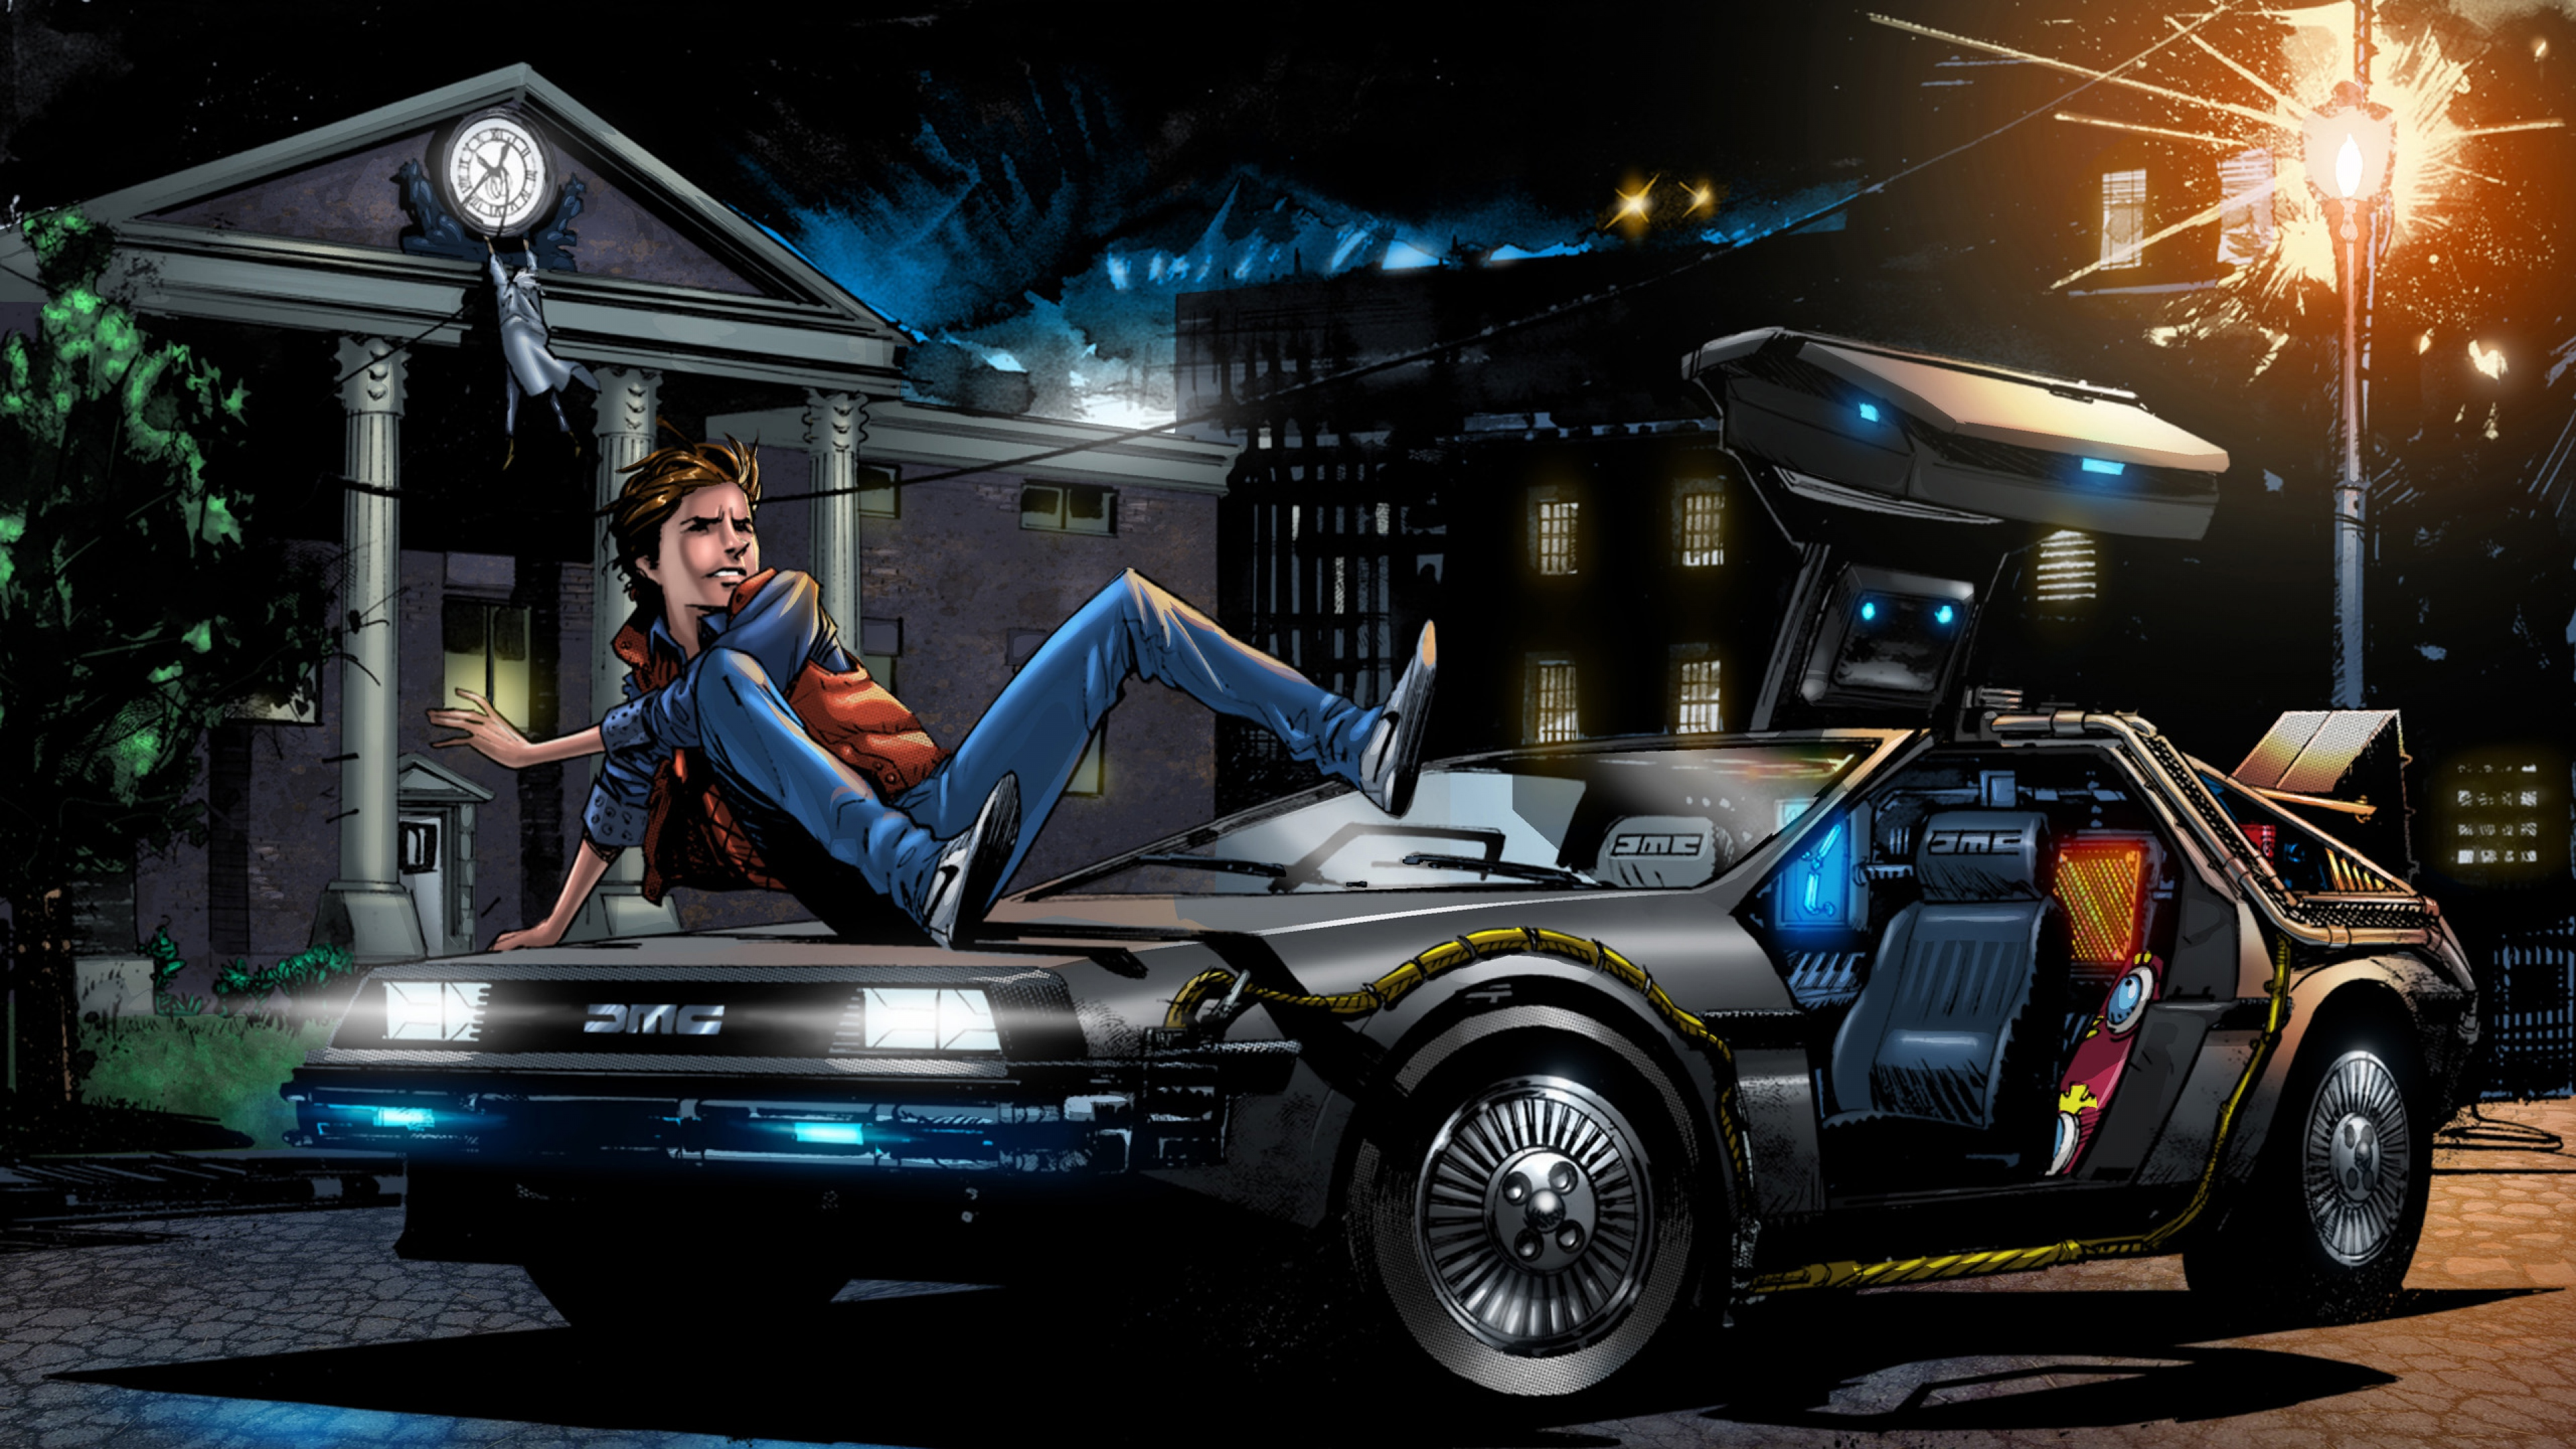 Wallpaper back to the future marty mcfly art delorean dmc 12 car 3840x2160